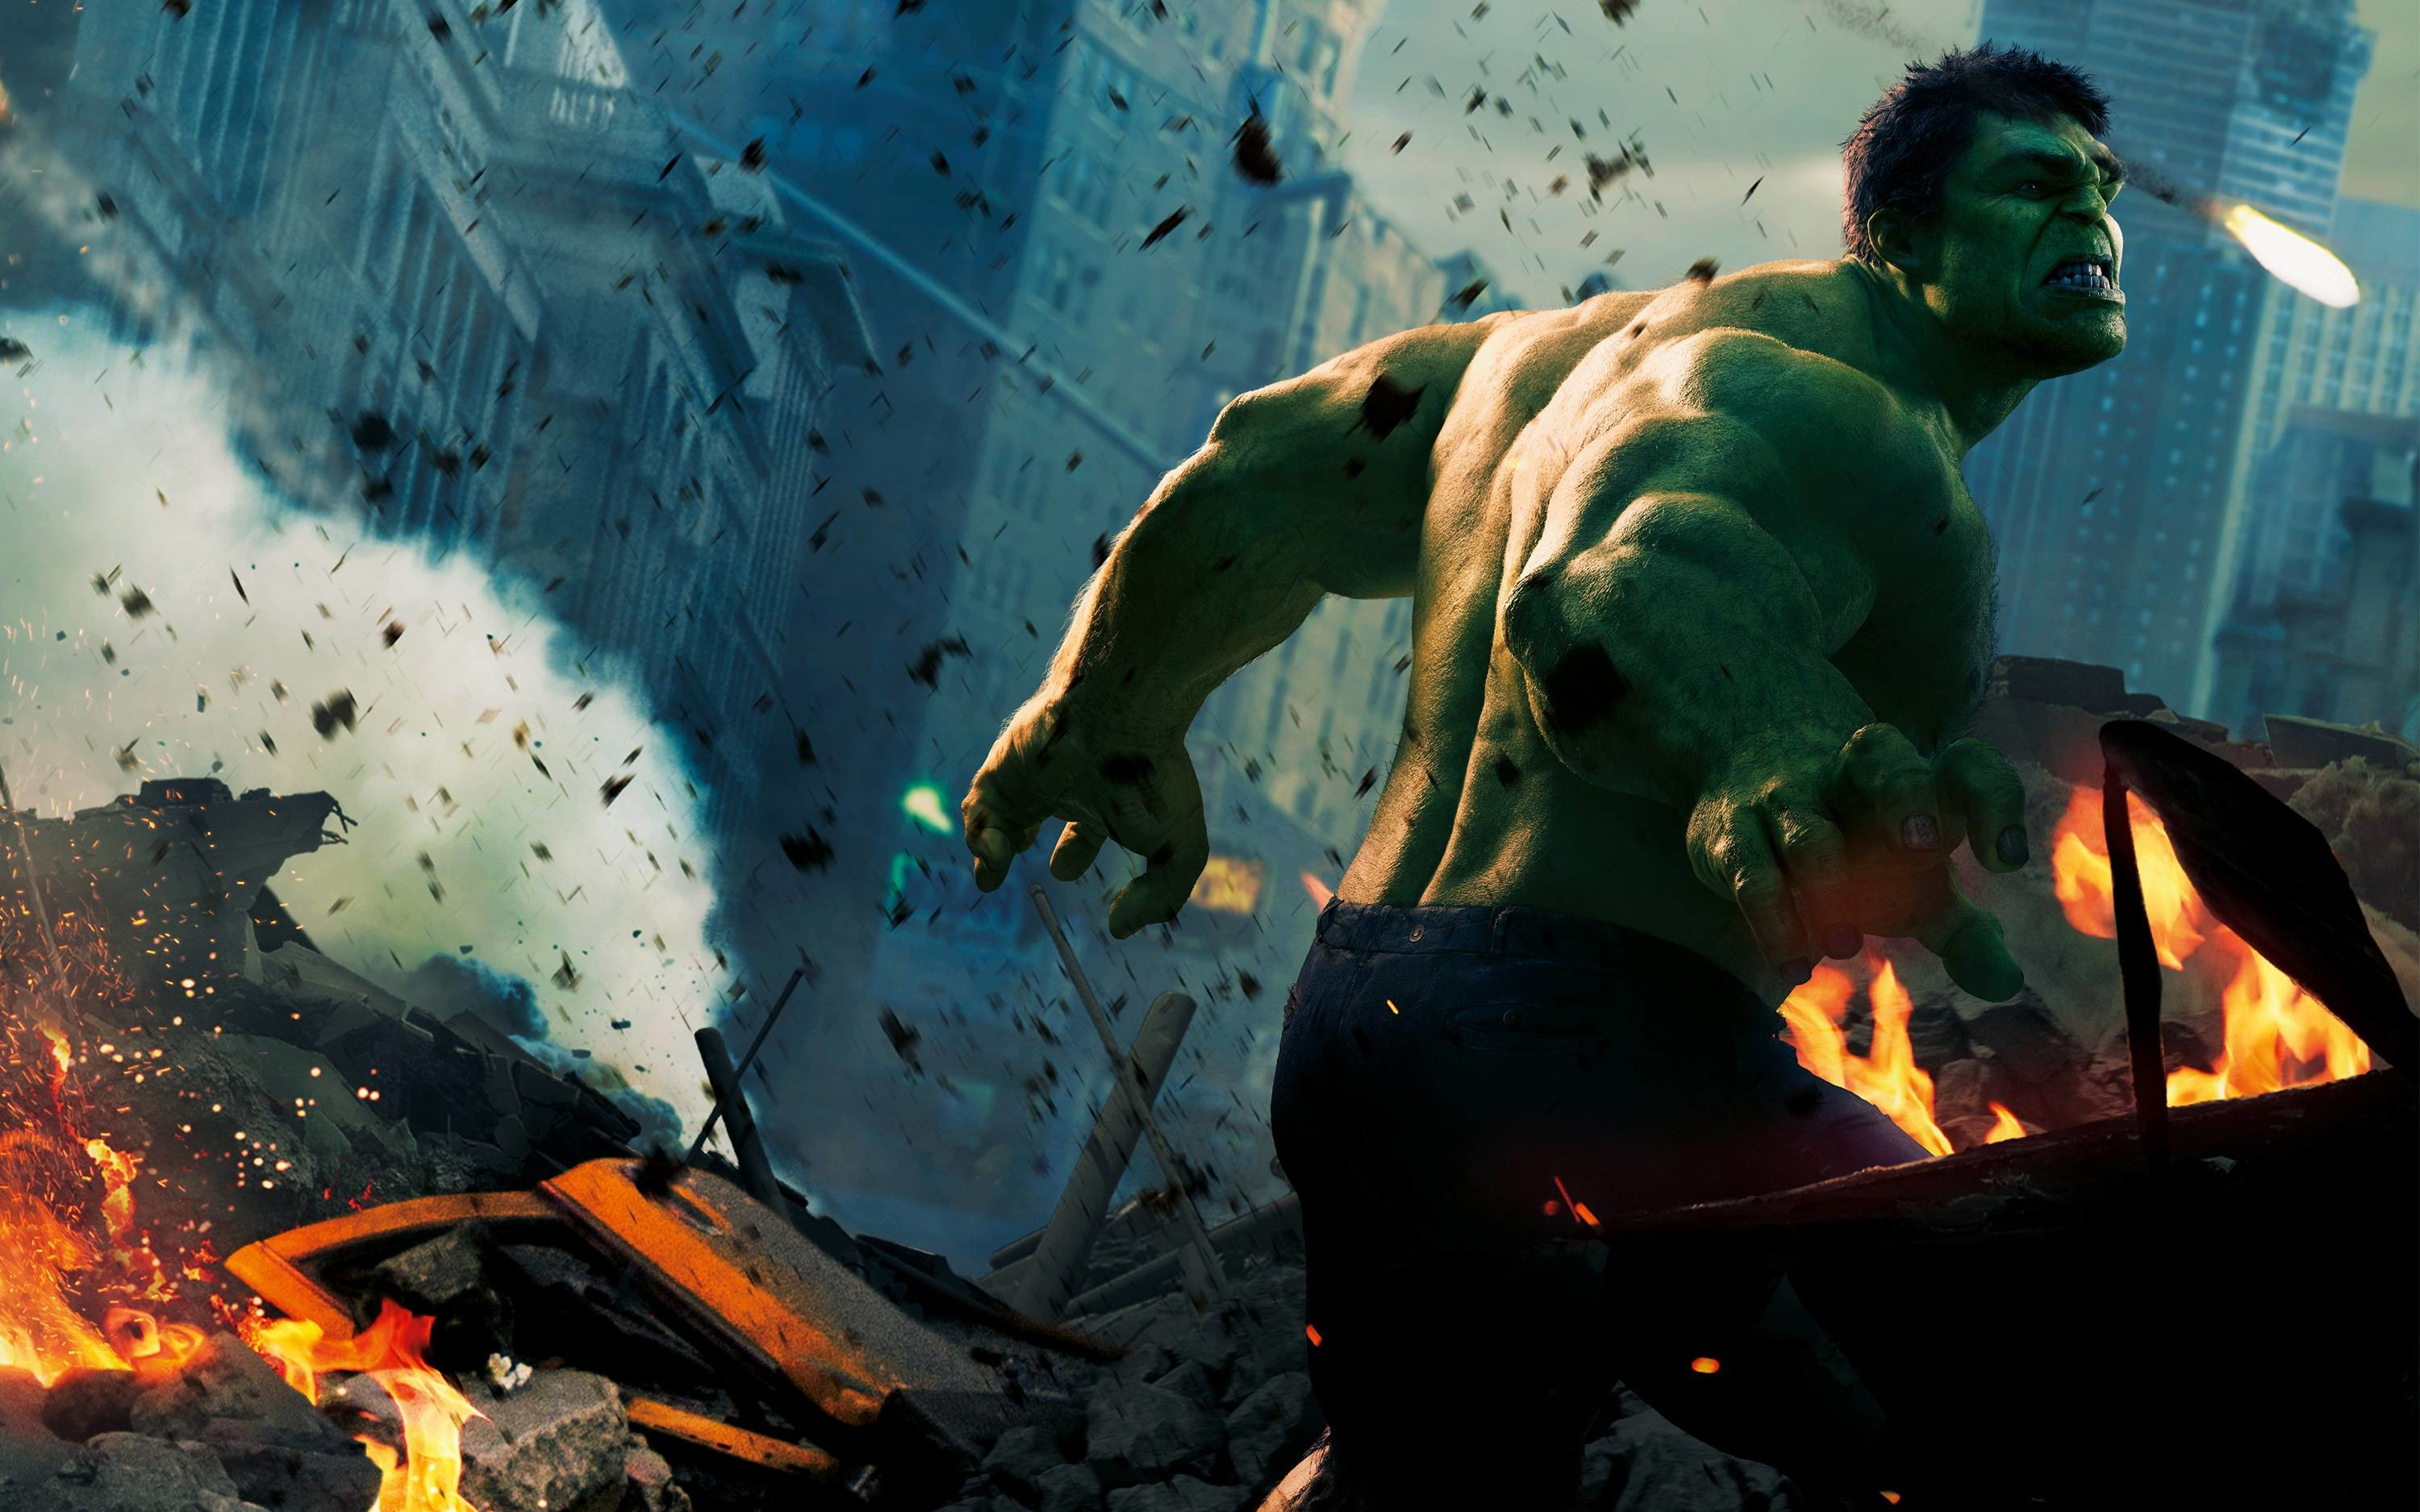 3000x1875 Hulk in 2012 Avengers Wallpapers | HD Wallpapers